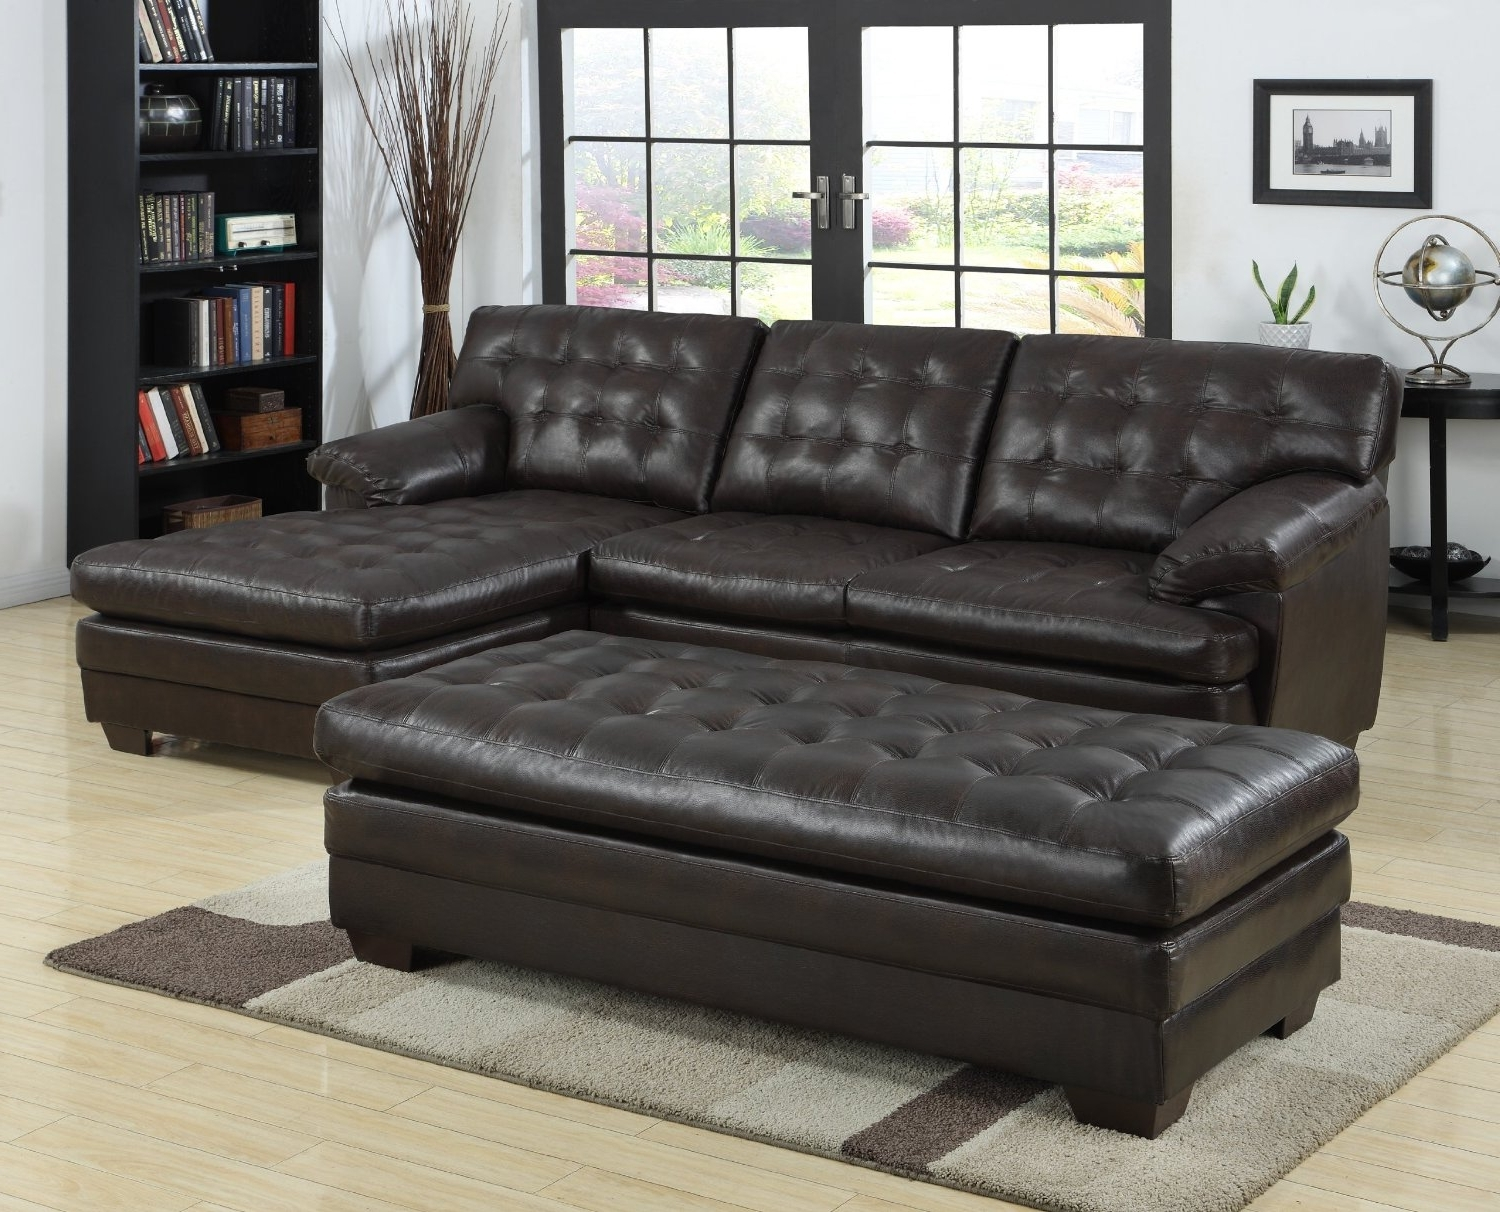 Well Liked Sofas With Chaise And Ottoman Throughout Black Tufted Leather Sectional Sofa With Chaise And Bench Seat (View 17 of 20)